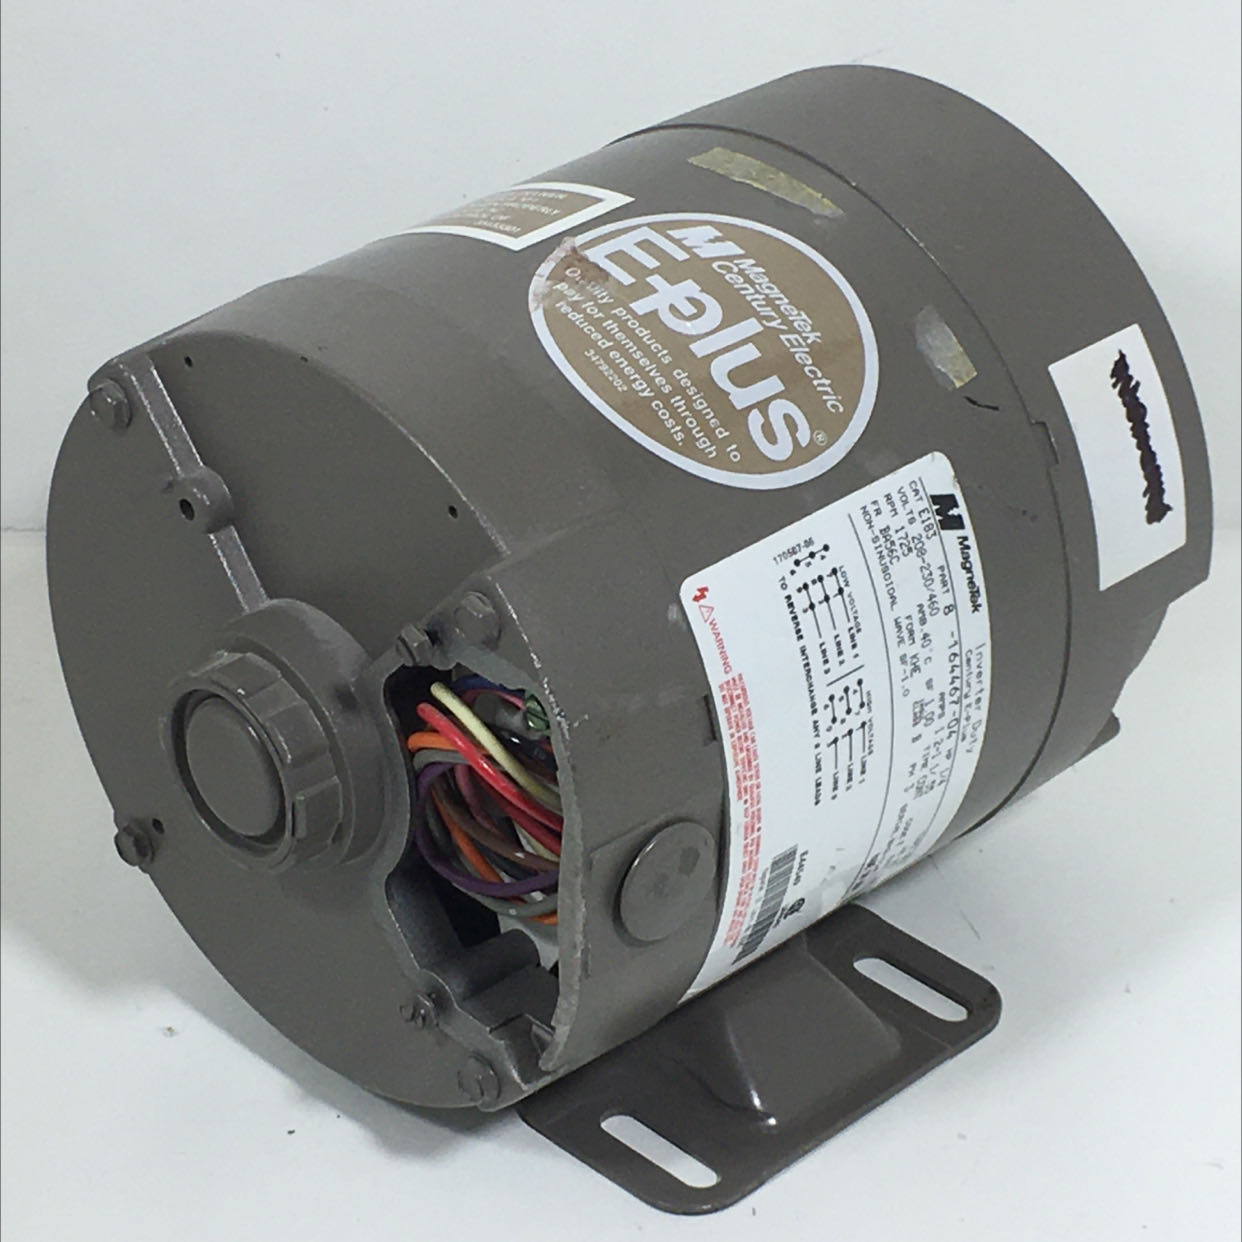 Magnetek 8-164467-04 Inverter Duty Century E-Plus